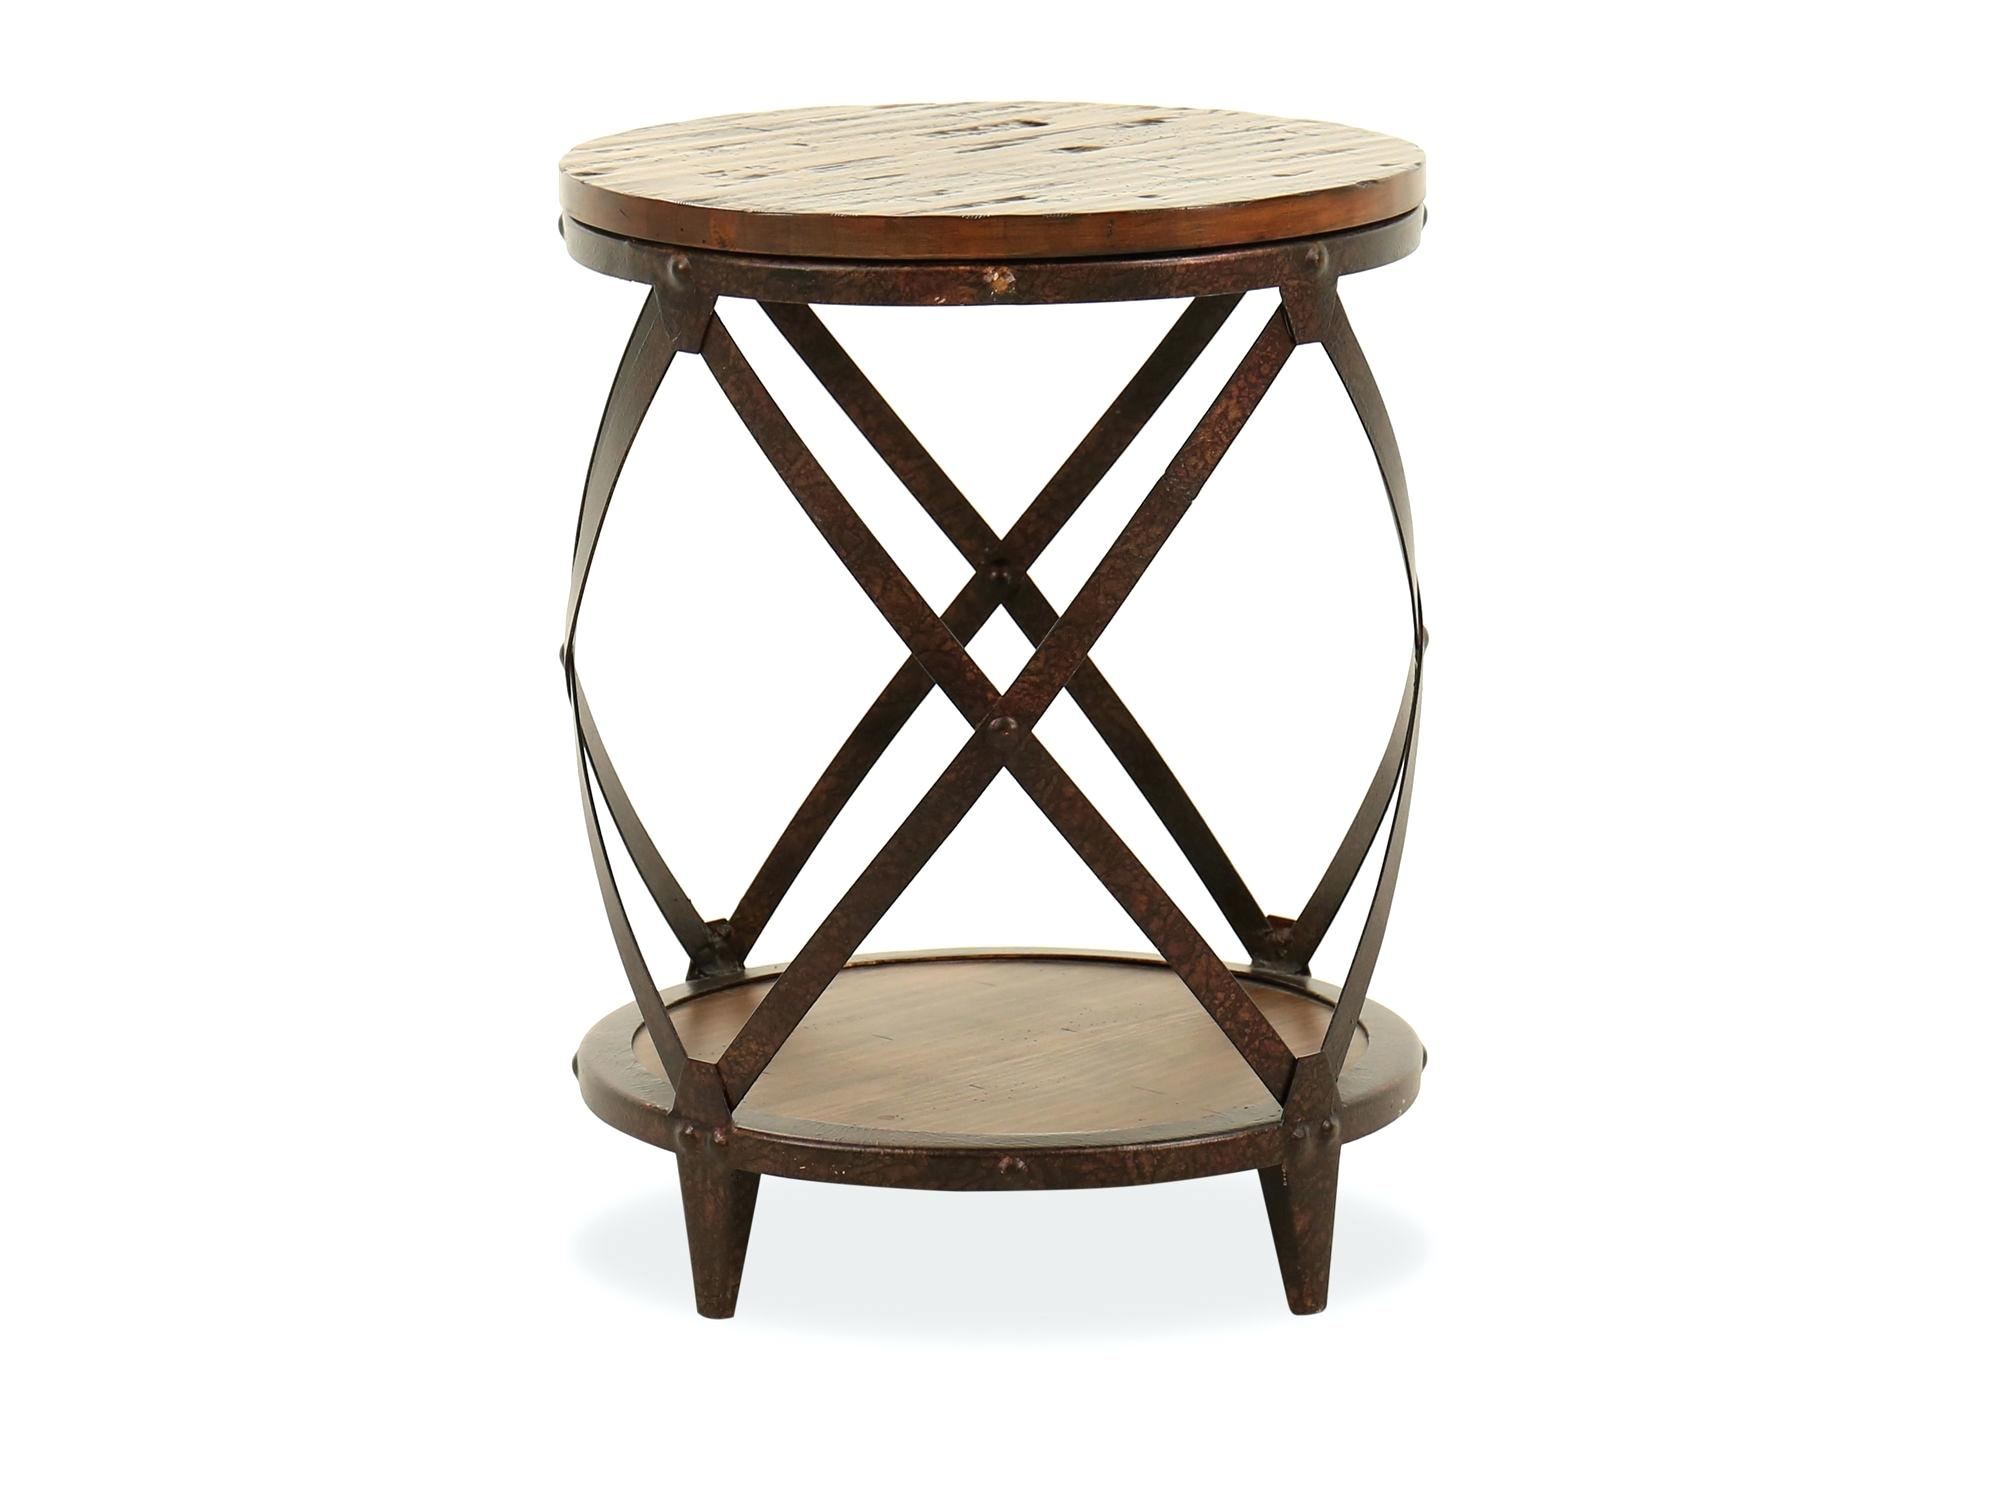 antique gold round accent table madison park zooey modern stone faceted with glass top end tables side brothers kitchen engaging distressed transit full size target mirrored